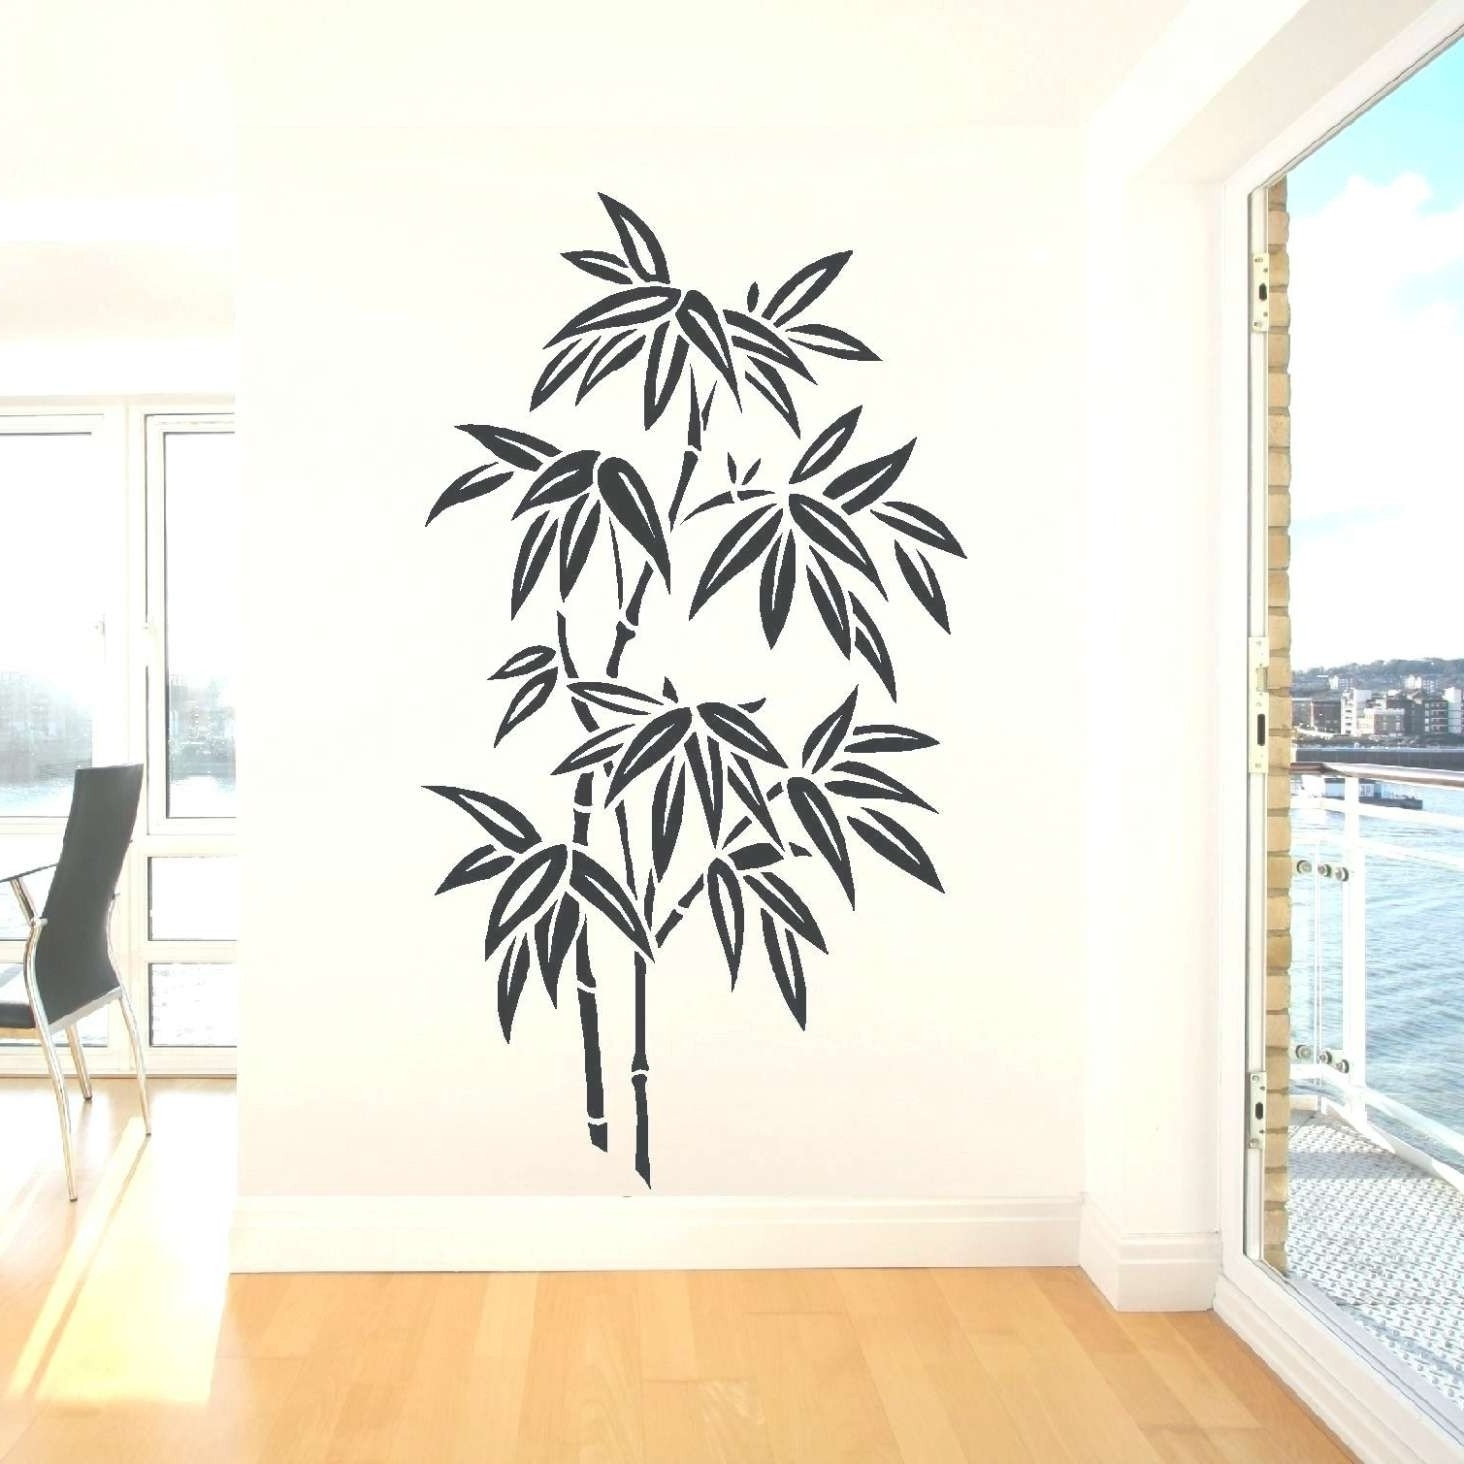 Well Liked Palm Tree Wall Art With Regard To Tree Wall Decal Hobby Lobby Beautiful Awesome Palm Tree Wall Art (View 15 of 15)